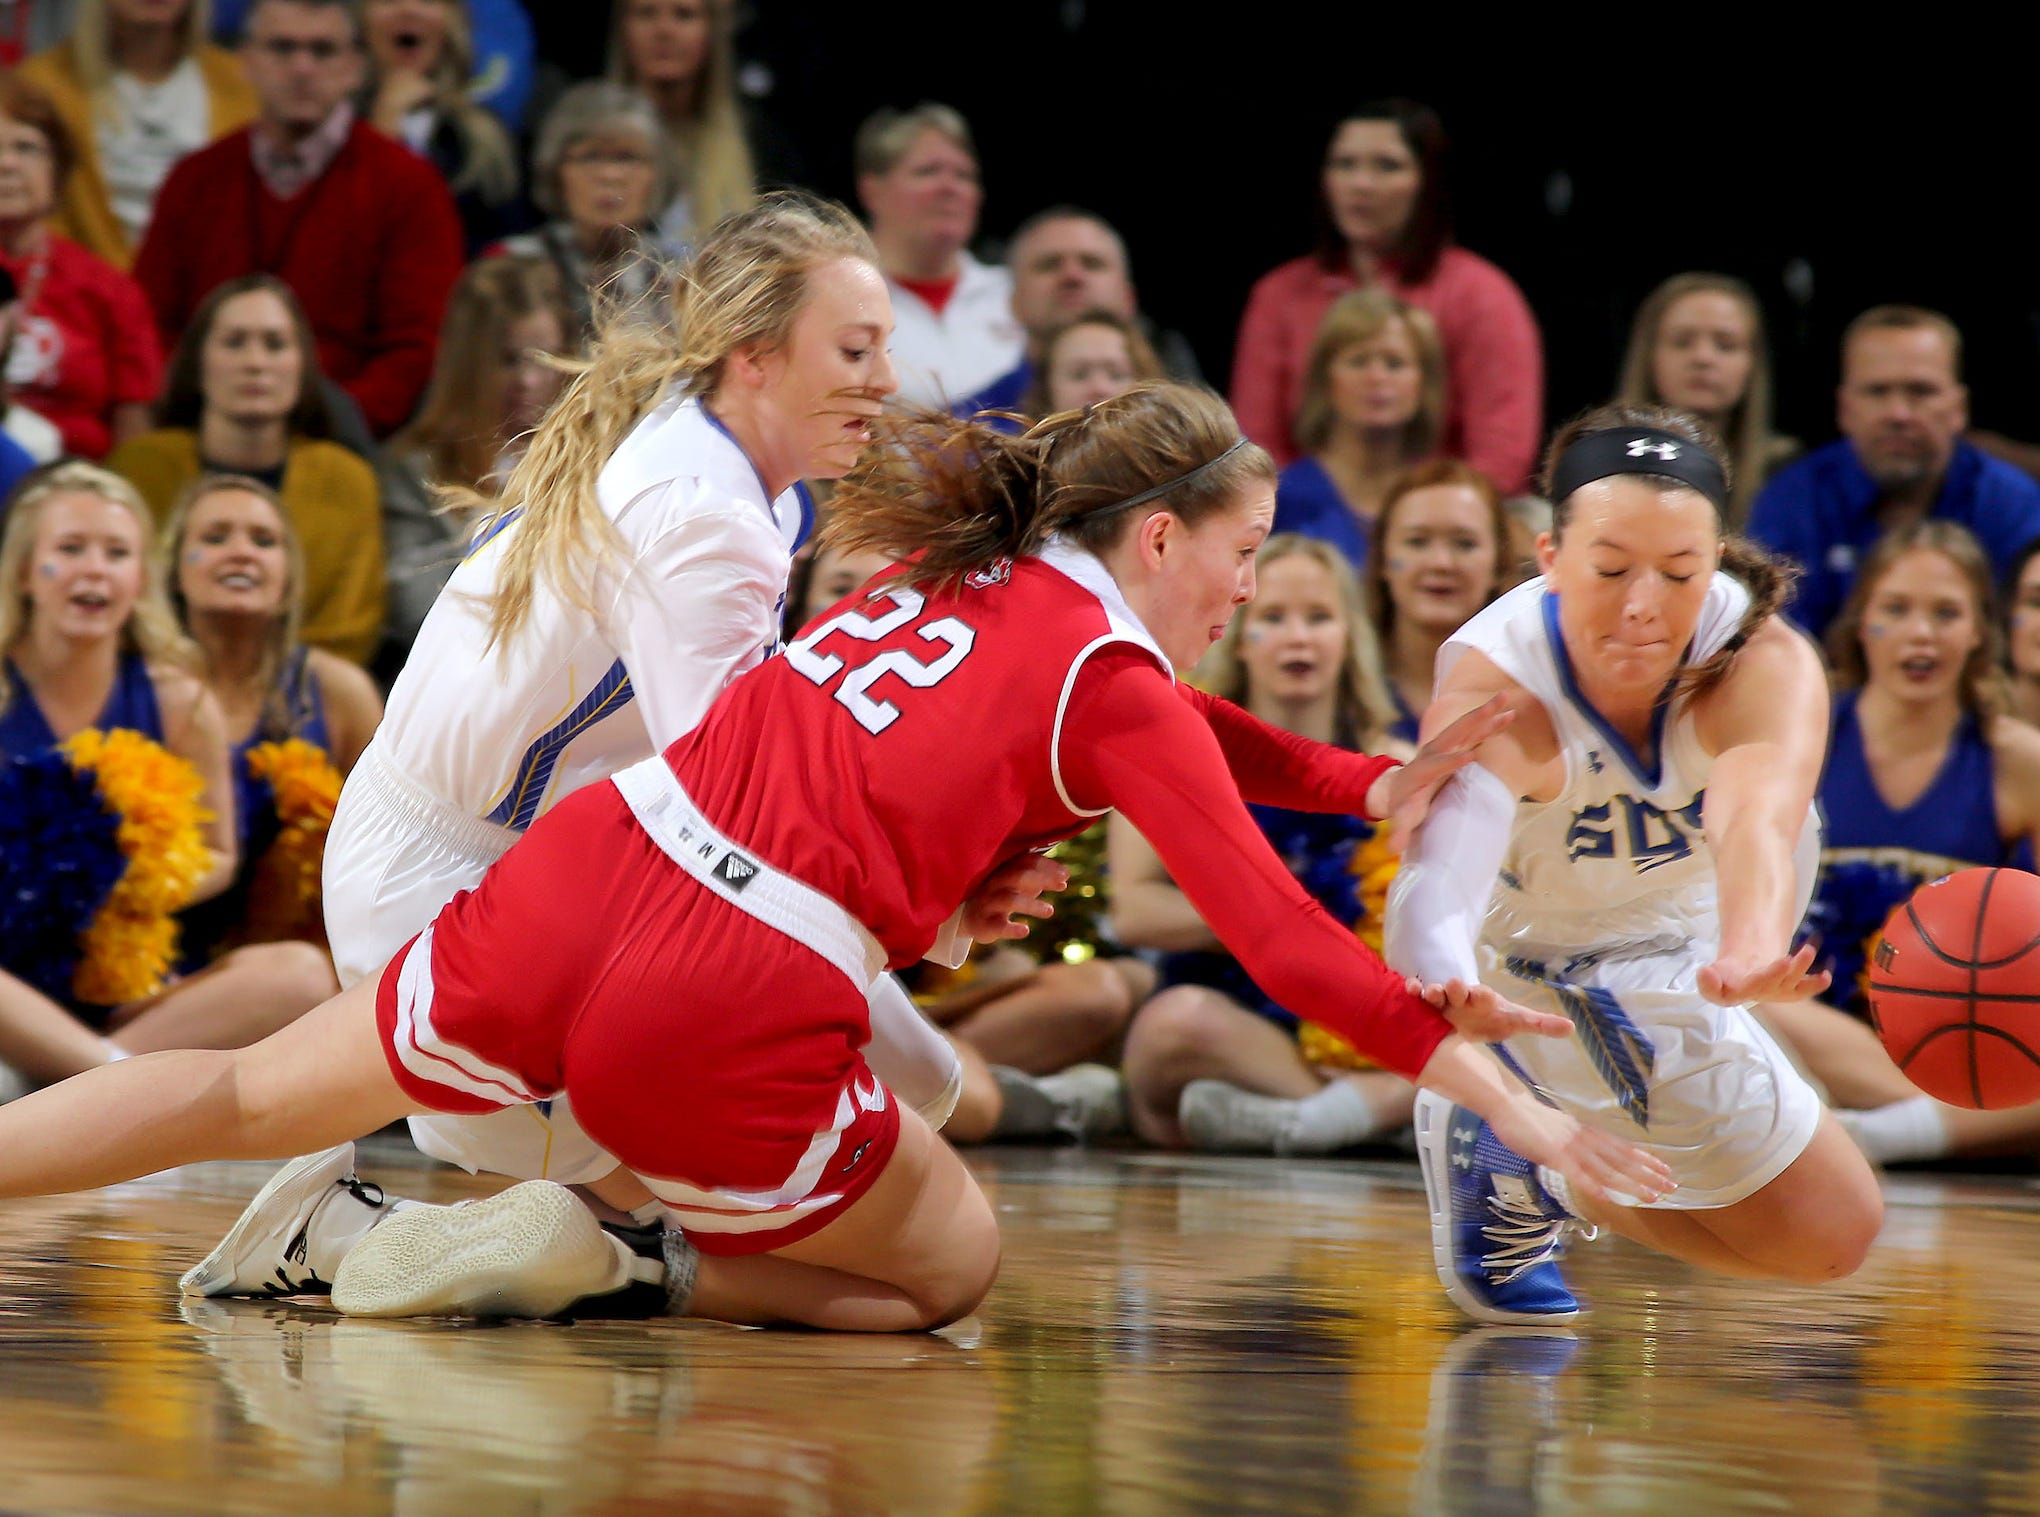 SIOUX FALLS, SD - MARCH 11: Sydney Palmer #32 from South Dakota State and Chloe Lamb #22 from South Dakota dive for a loose ball at the 2019 Summit League Basketball Tournament at the Denny Sanford Premier Center in Sioux Falls. (Photo by Dave Eggen/Inertia)